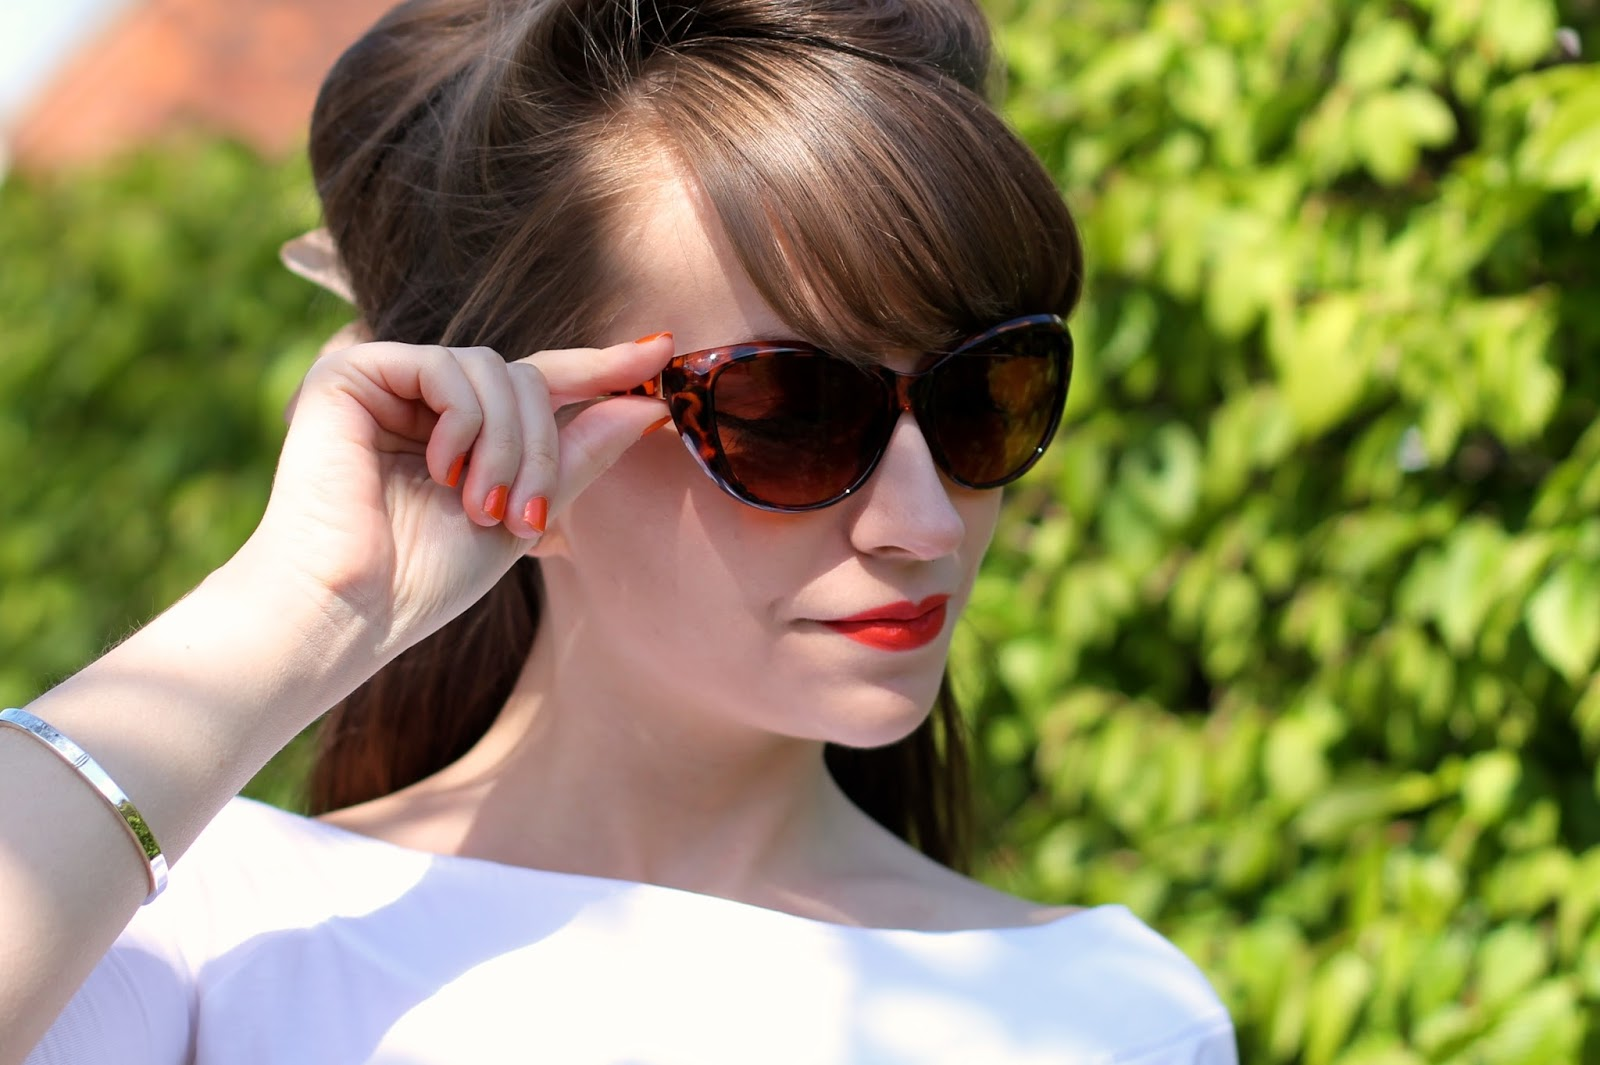 Tortoiseshell catseye sunglasses by Peacocks